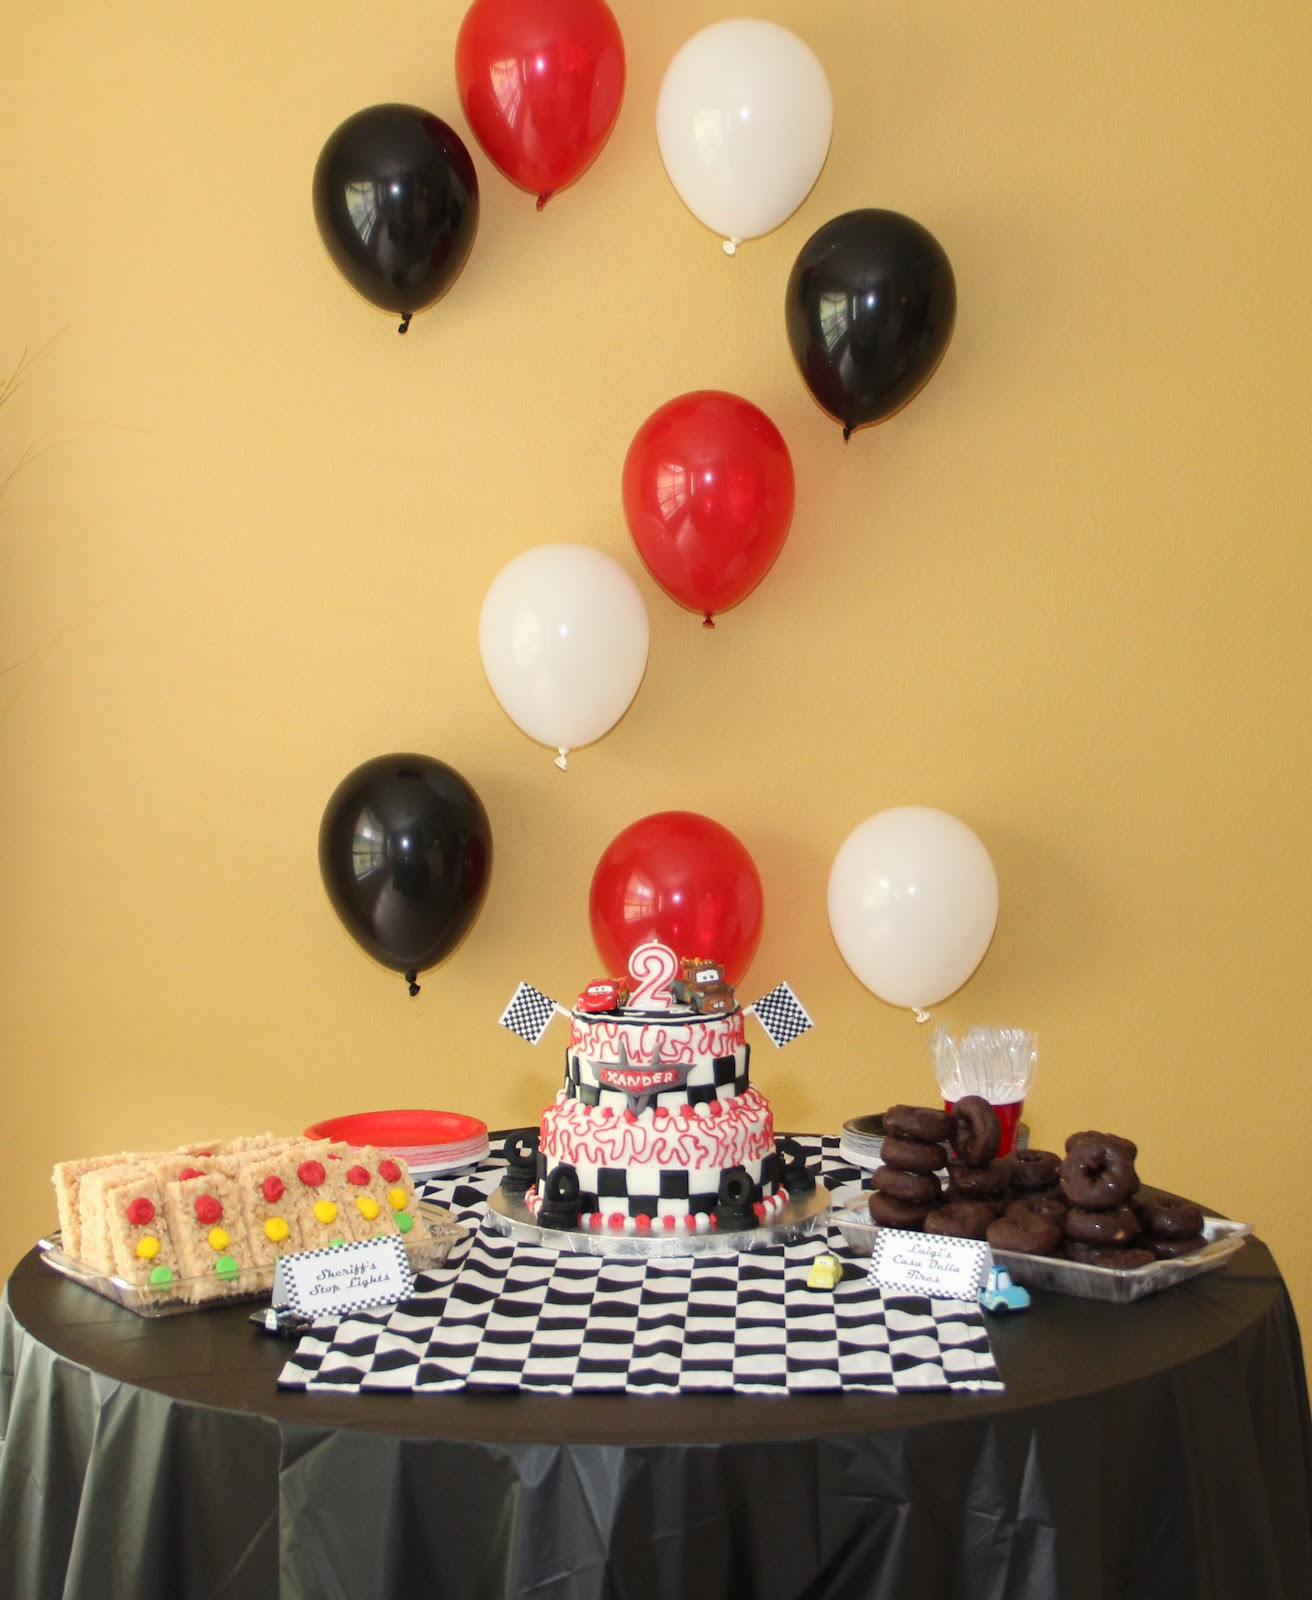 Cars Table Decorations 52 Week Pinterest Challenge Cars Themed Decorations